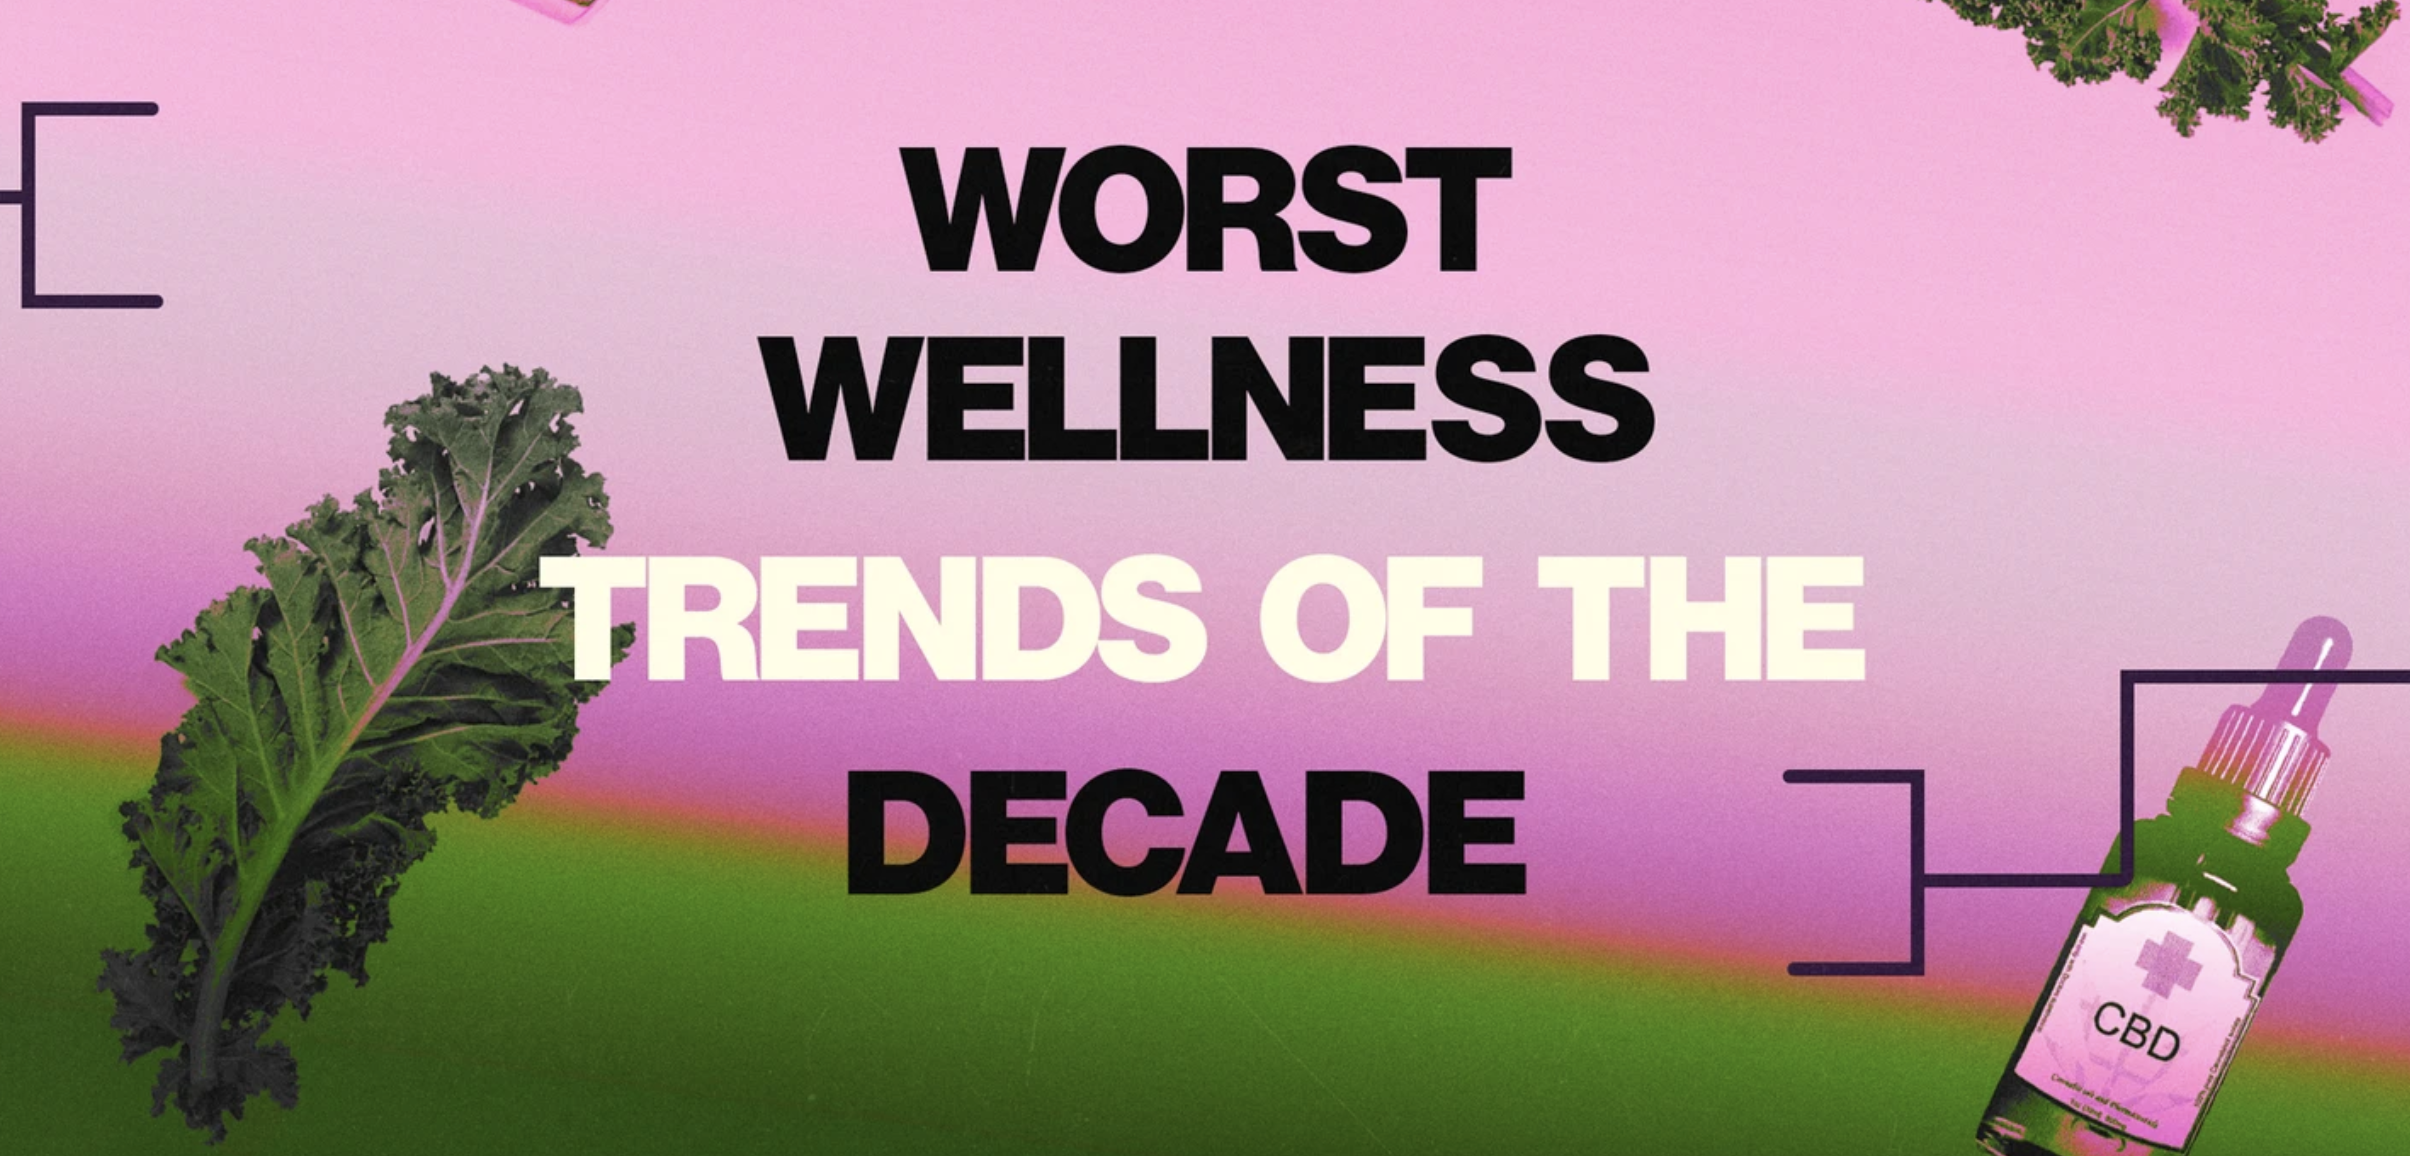 What Was The Worst Wellness Trend Of The 2010s?